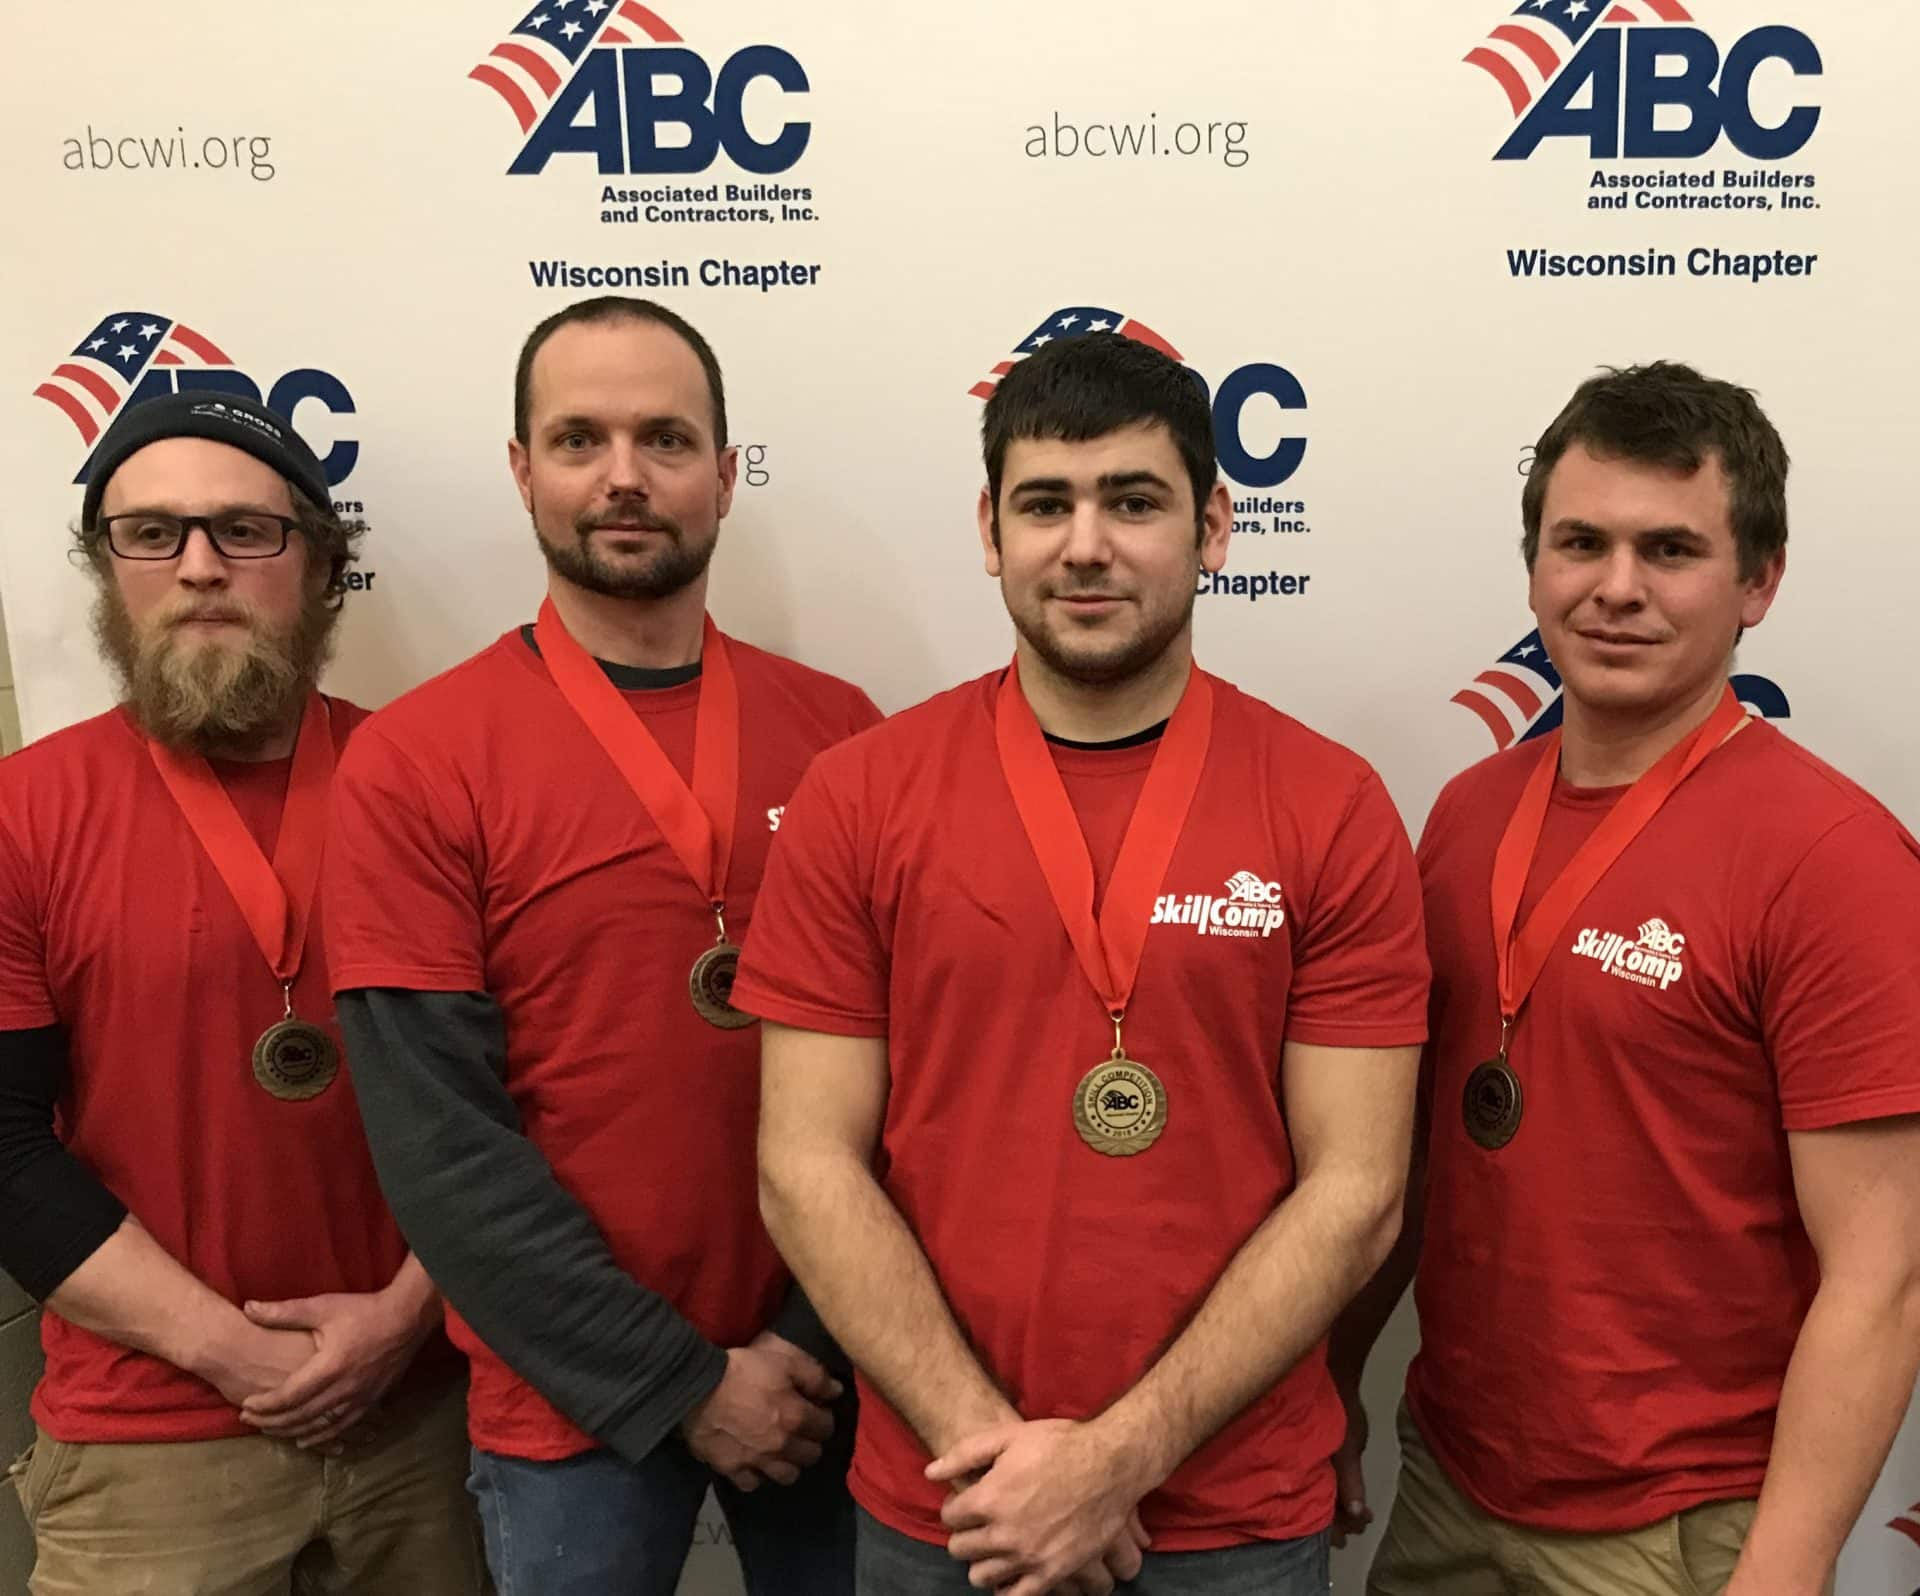 skill competition winners standing with medals around their necks